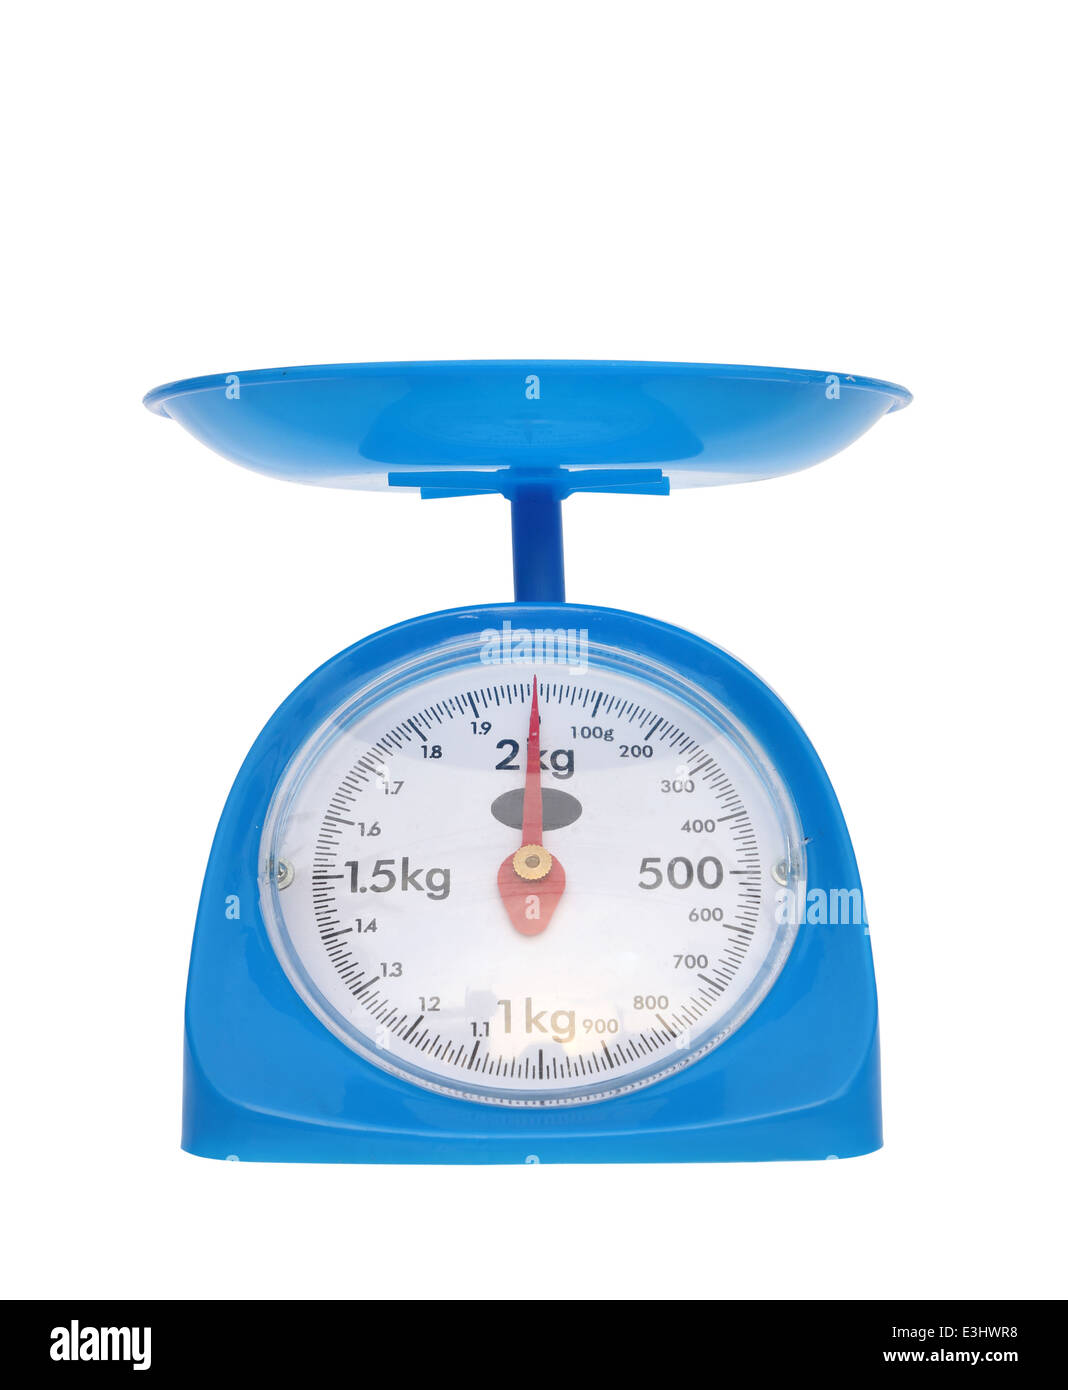 Kitchen Scales Stock Photos & Kitchen Scales Stock Images - Alamy